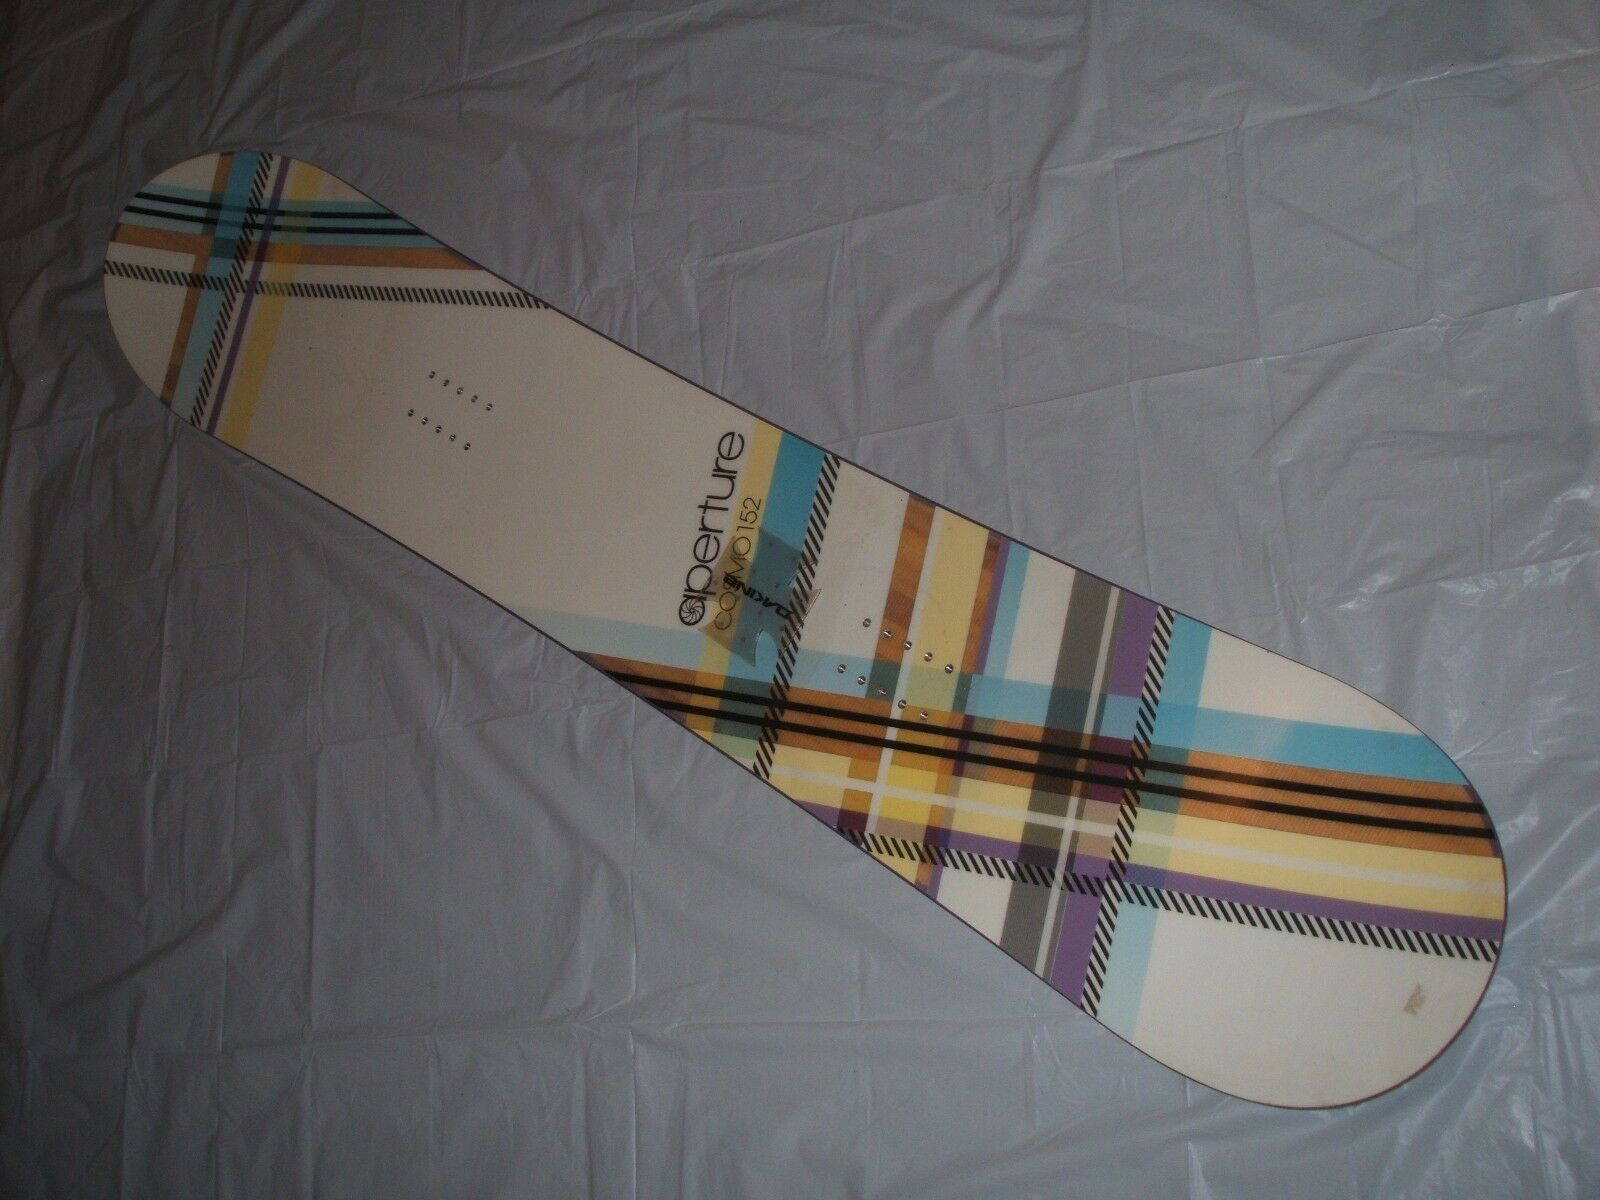 Aperture Cosmo 152 cm Snowboard Excellent Condition ONLY  75